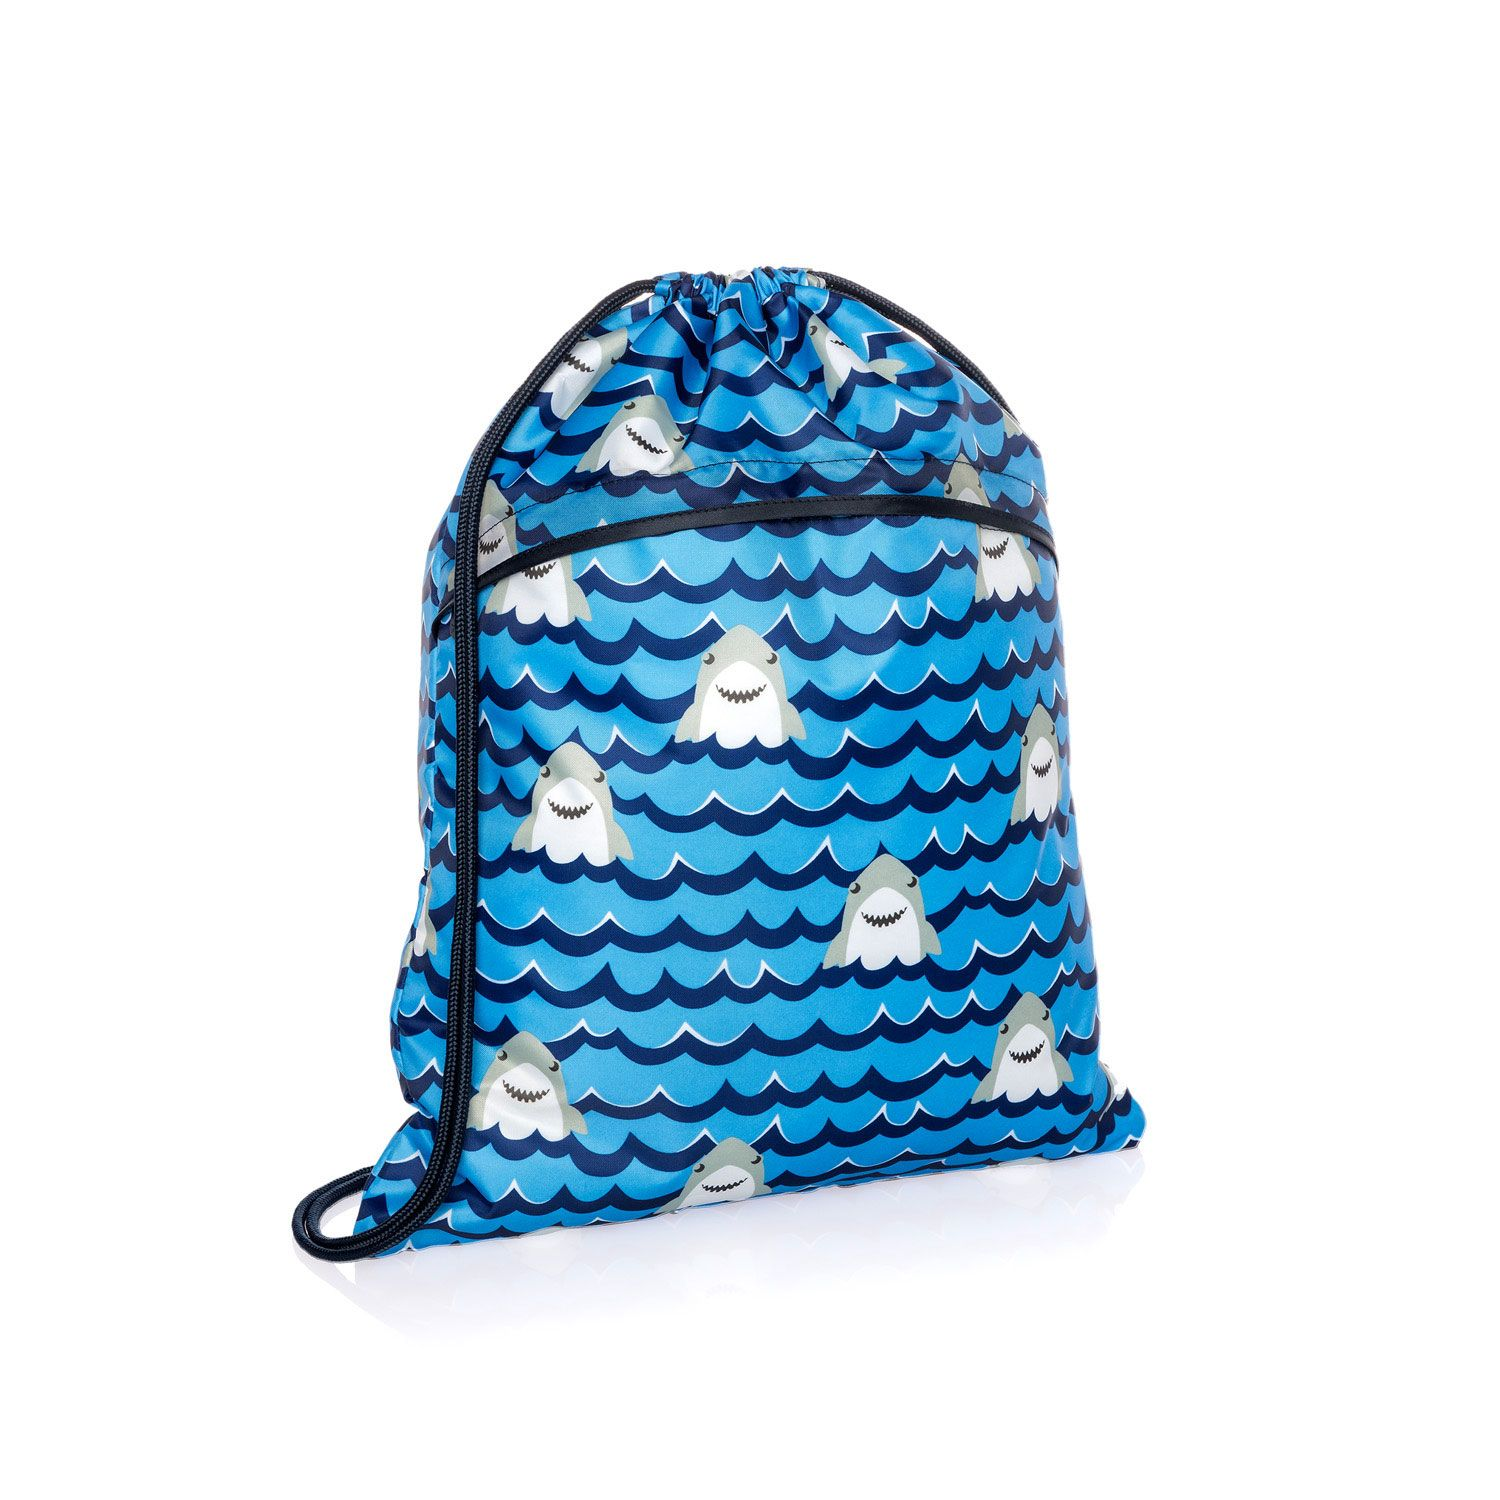 Shark Party - Cinch Sac - Thirty-One Gifts 6cc00defda27c